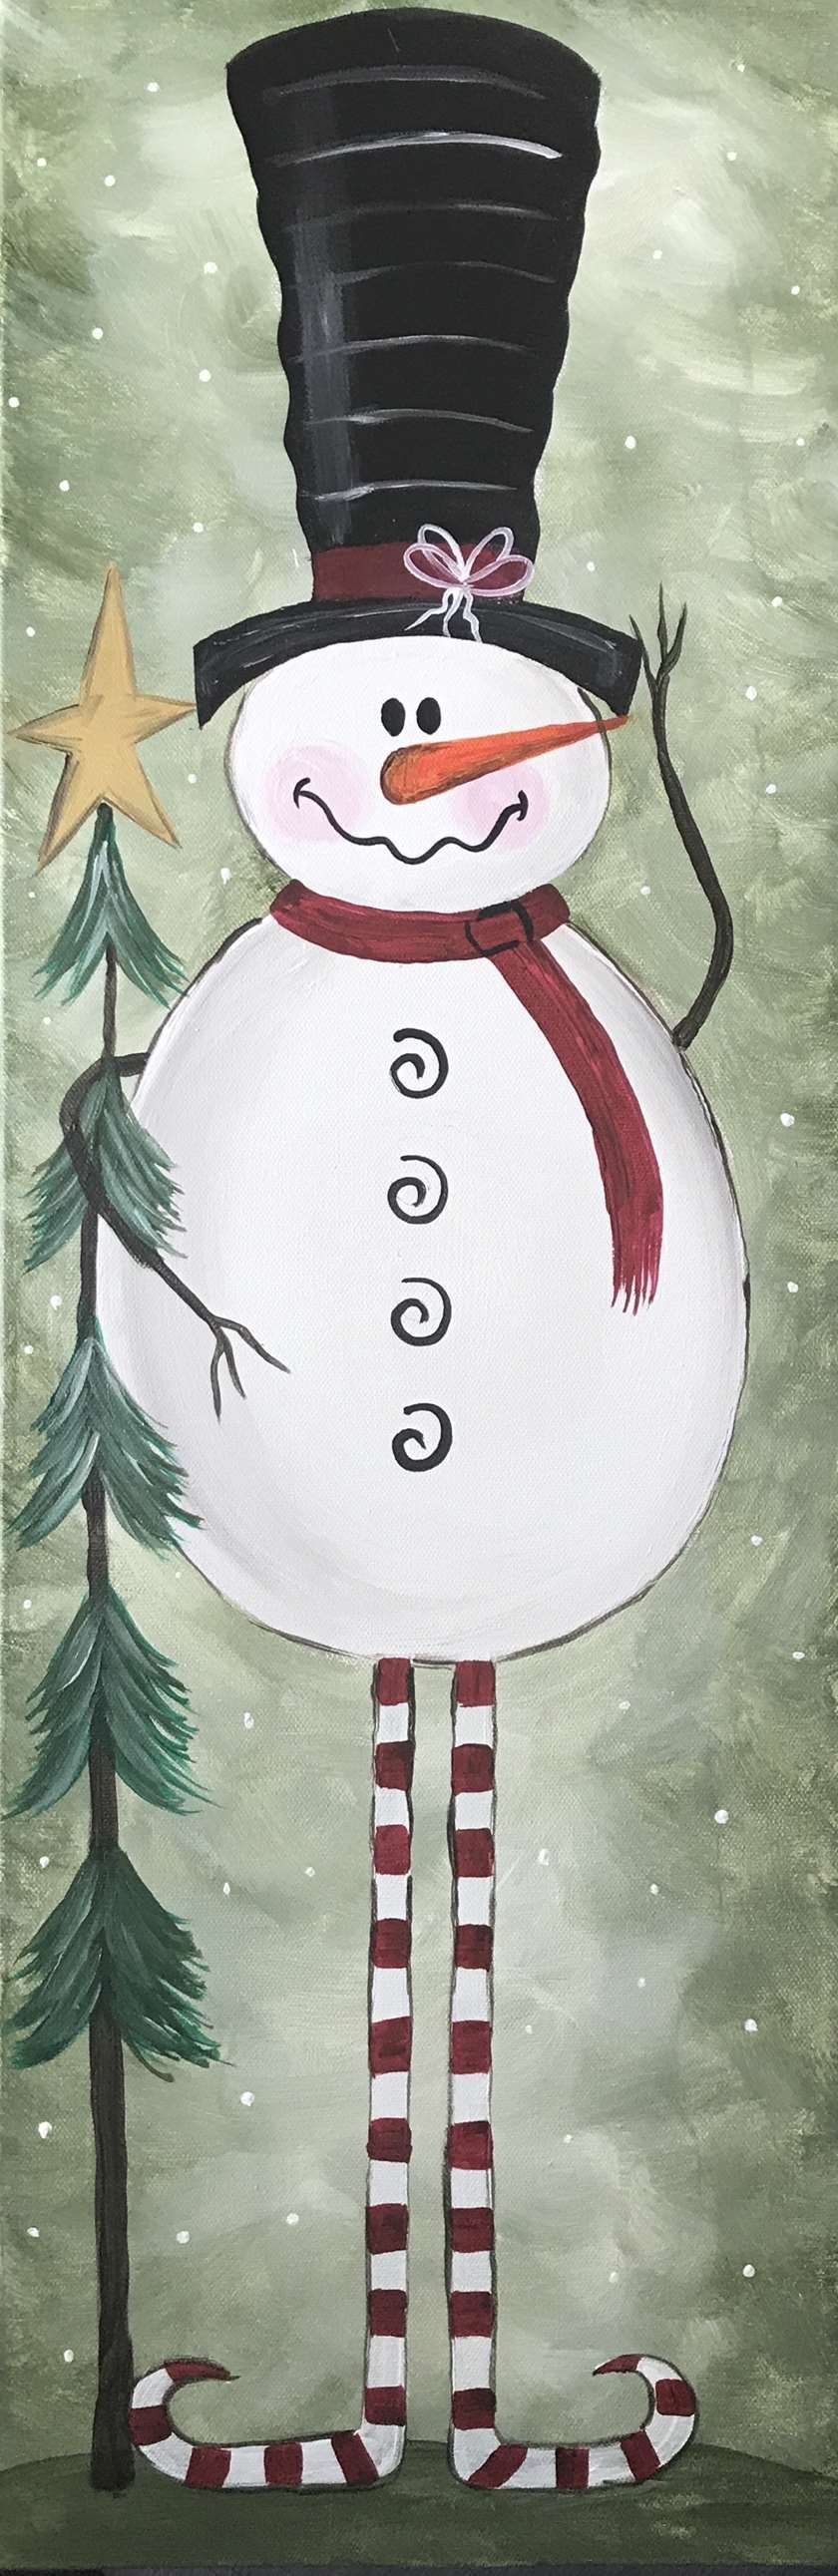 Snowman! Paint this on a 10x30 canvas, Friday November 30th from 7-10 pm! This charming vintage snowman's personality just jumps off this canvas!!